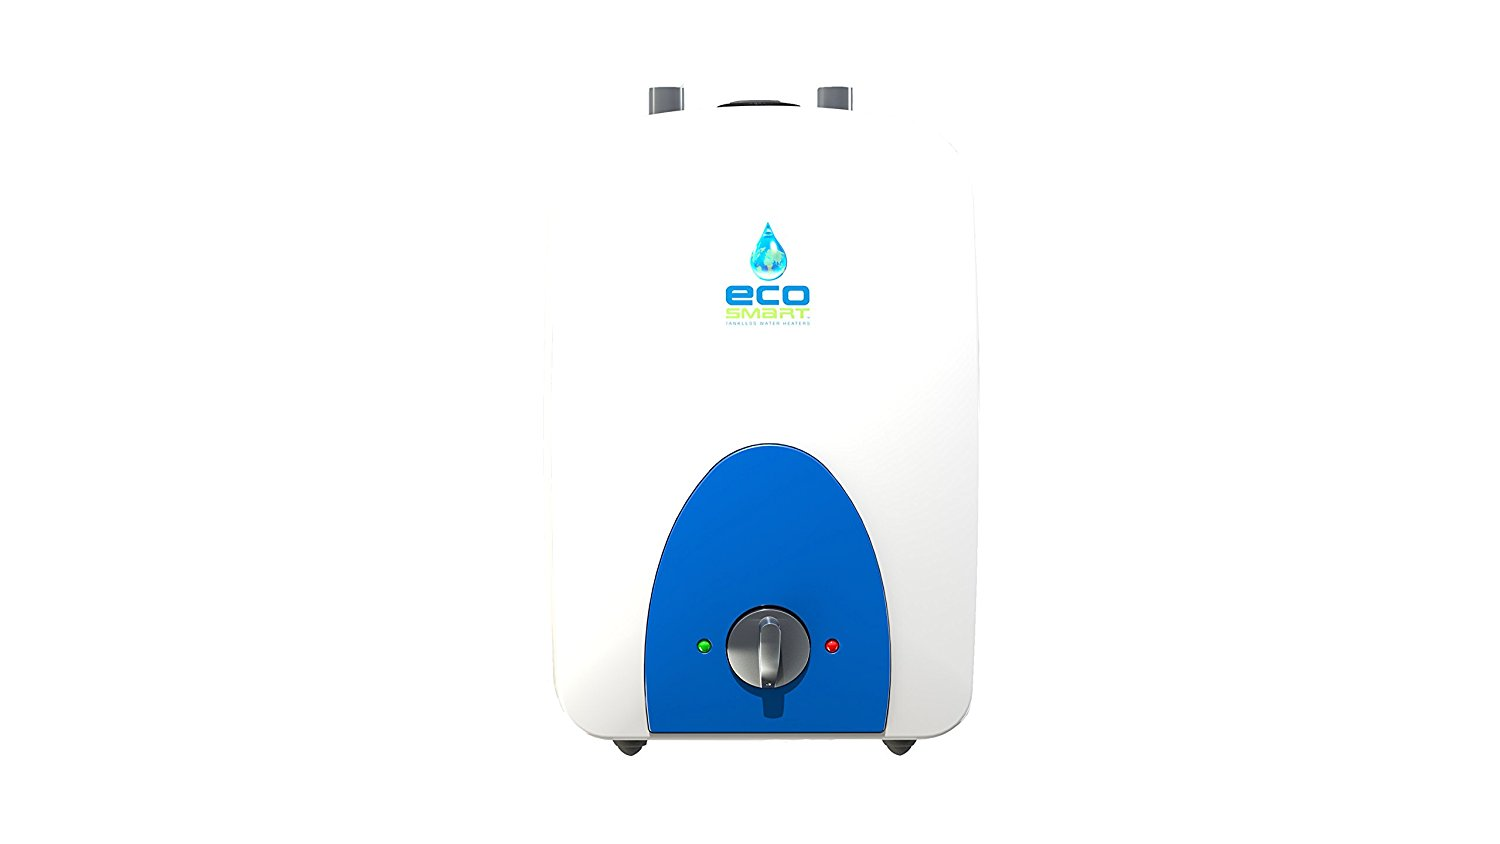 Ecosmart ECO MINI 1 1.5-Gallon 120V Electric Mini Tank Water Heater-Mini-Tank Water Heaters